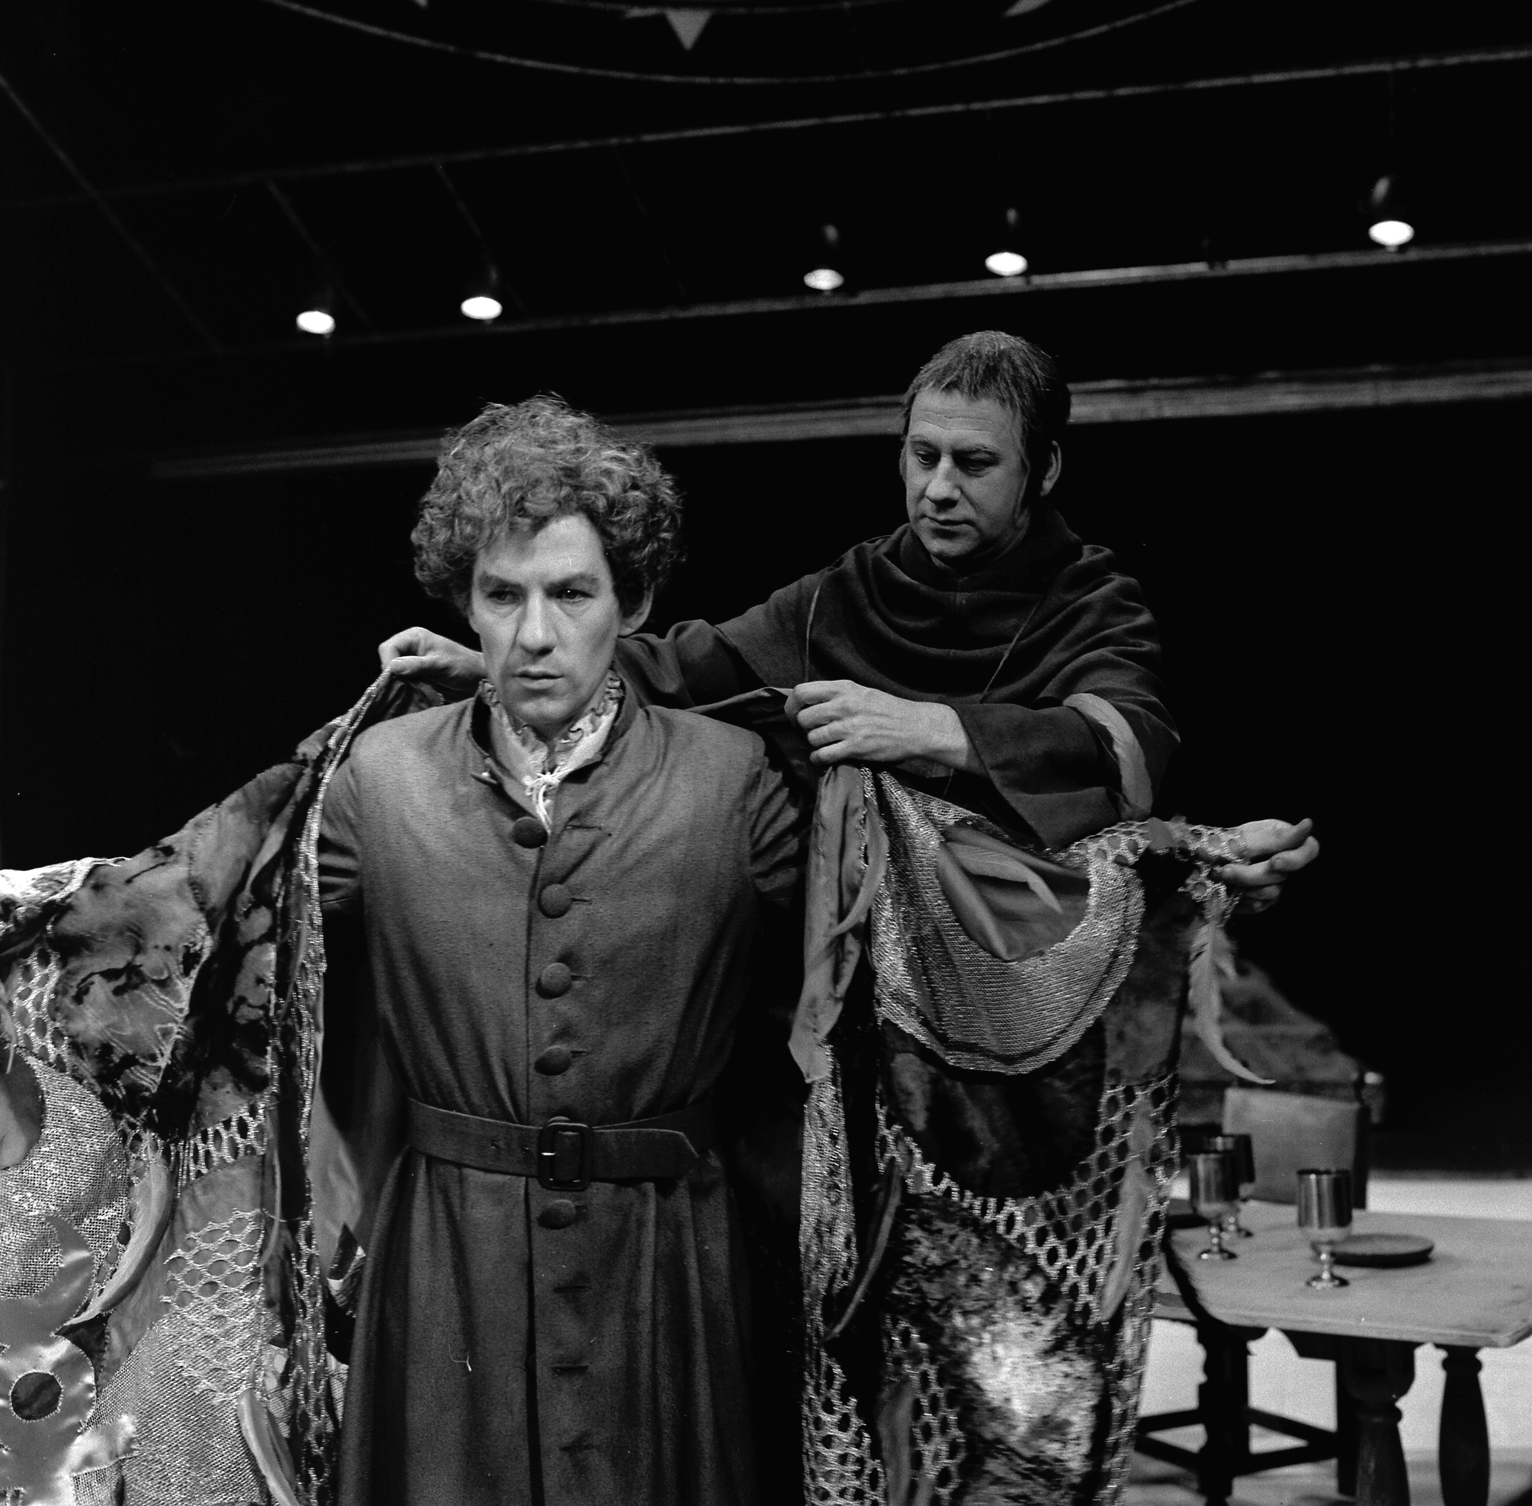 doctor faustus macbeth compare and The tragical history of the life and death of doctor faustus, commonly referred to simply as doctor faustus, is an elizabethan tragedy by christopher marlowe.